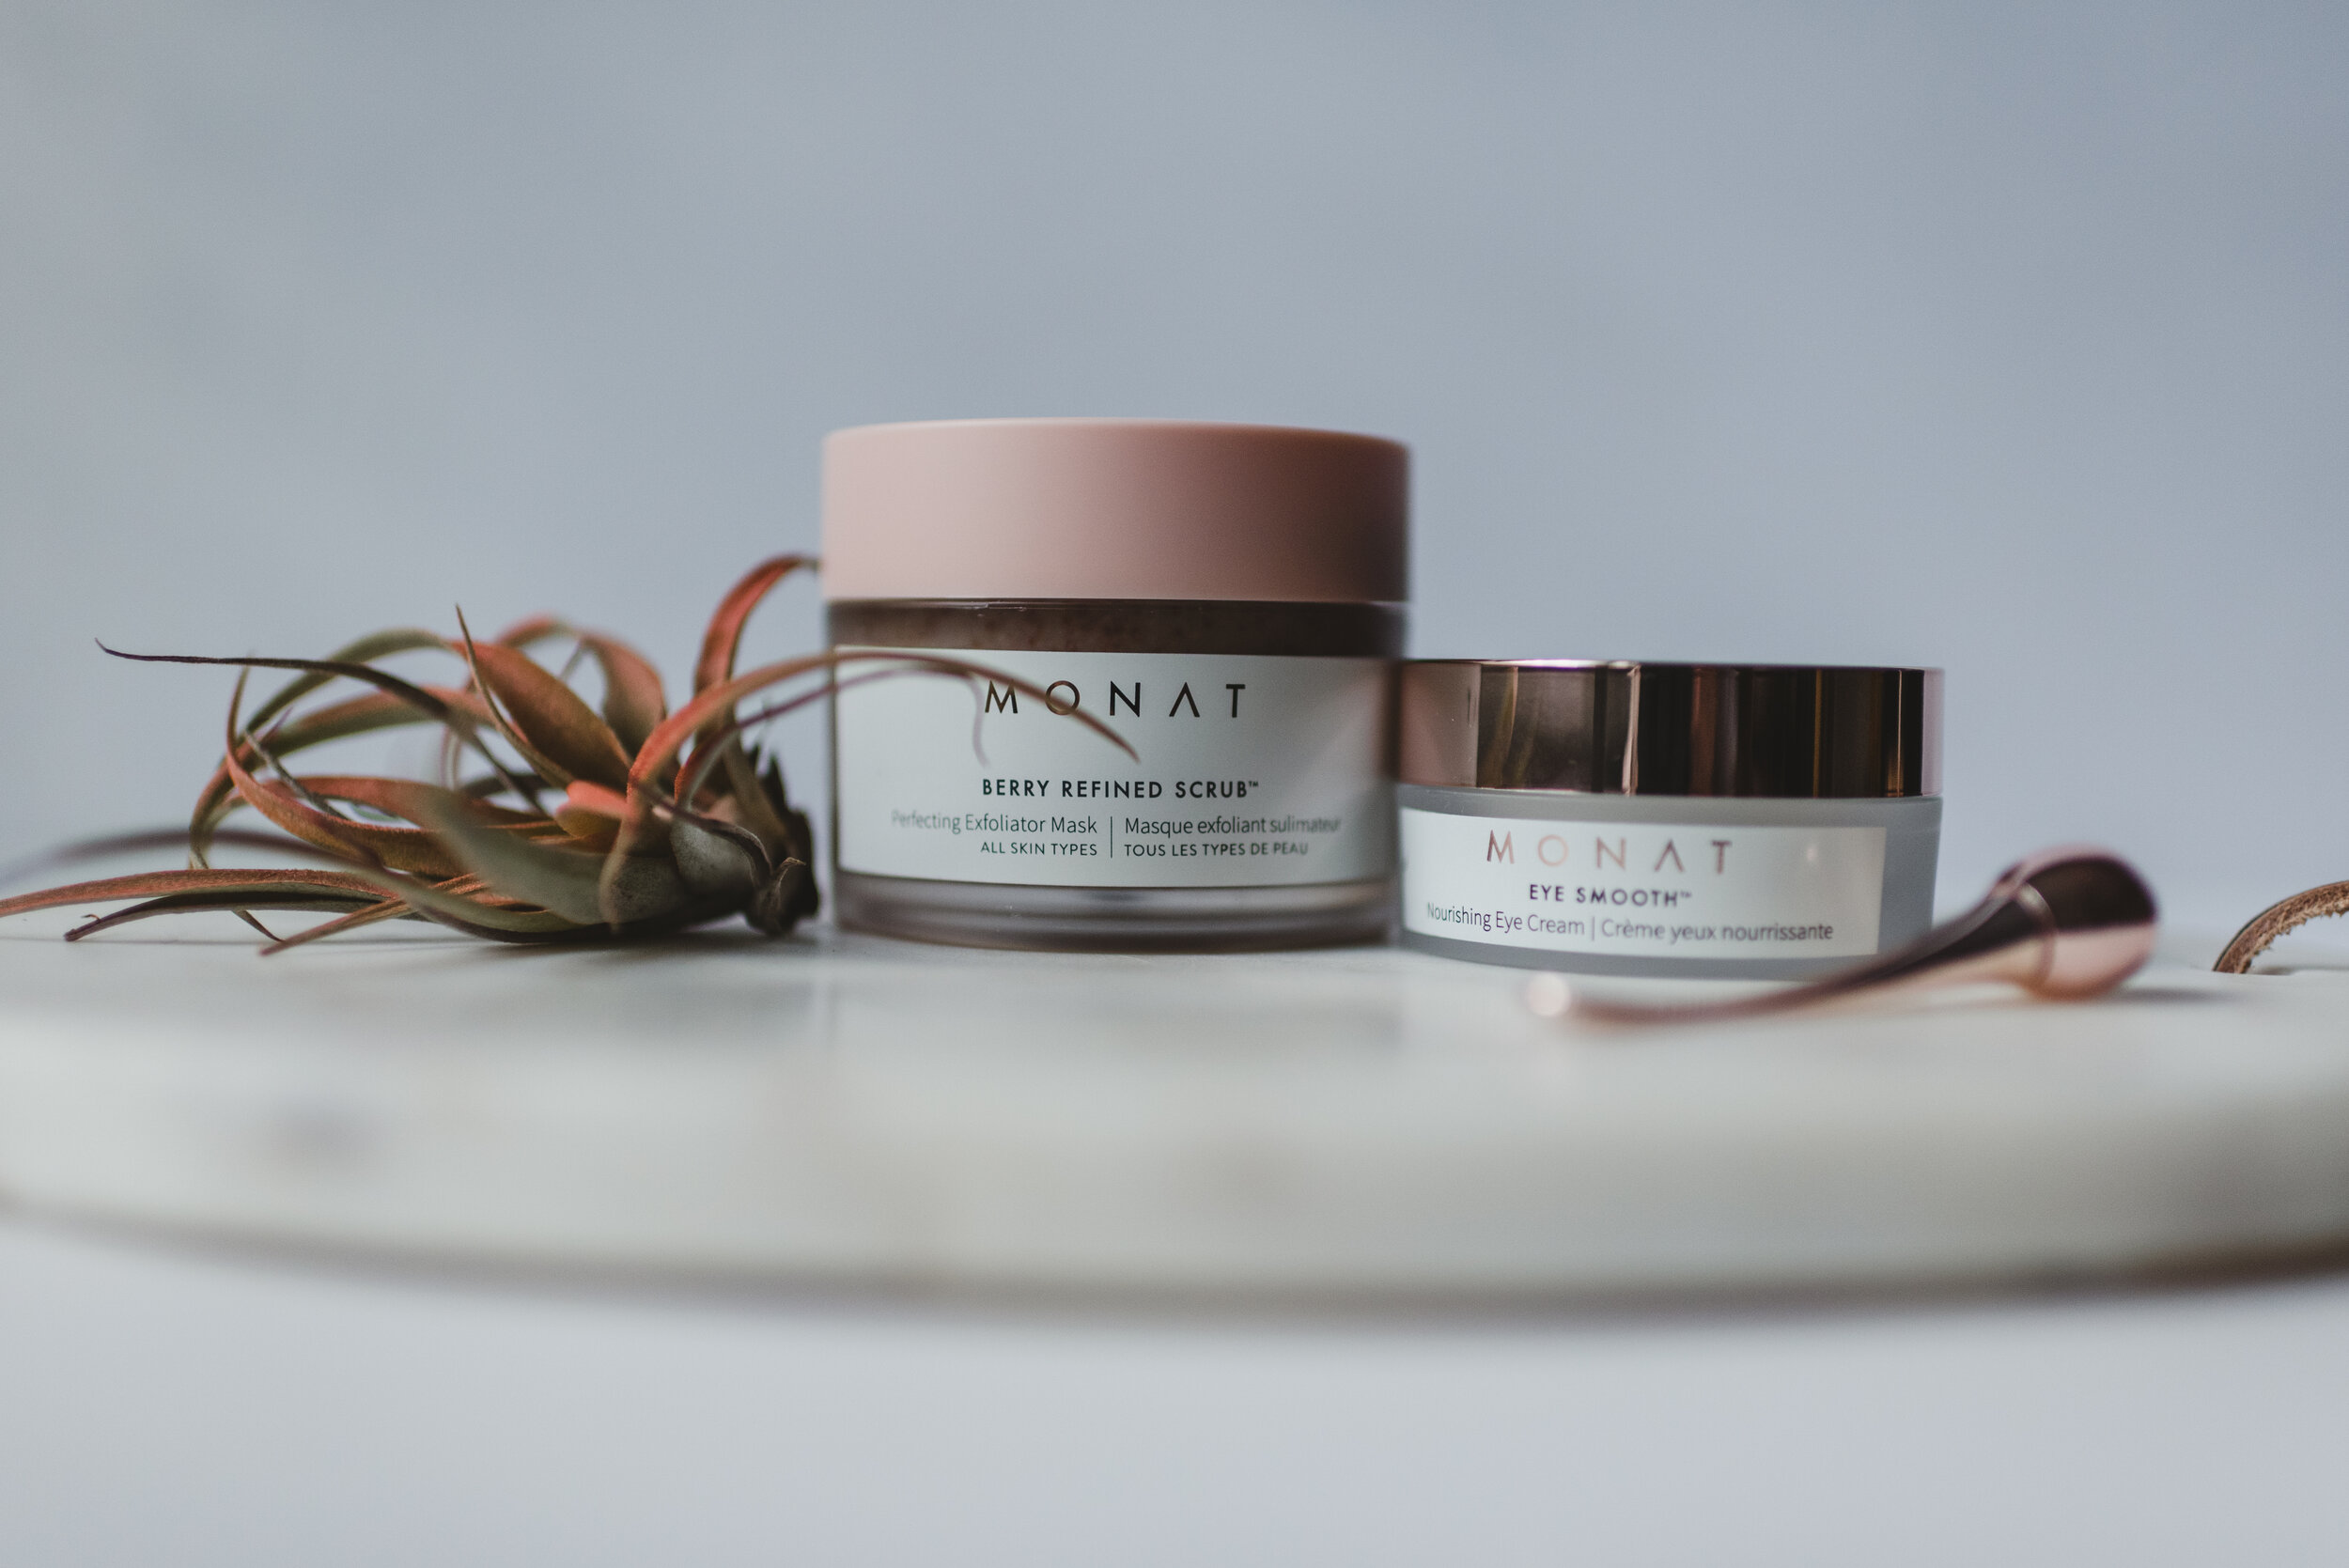 monat anti aging naturally based skincare berry scrub